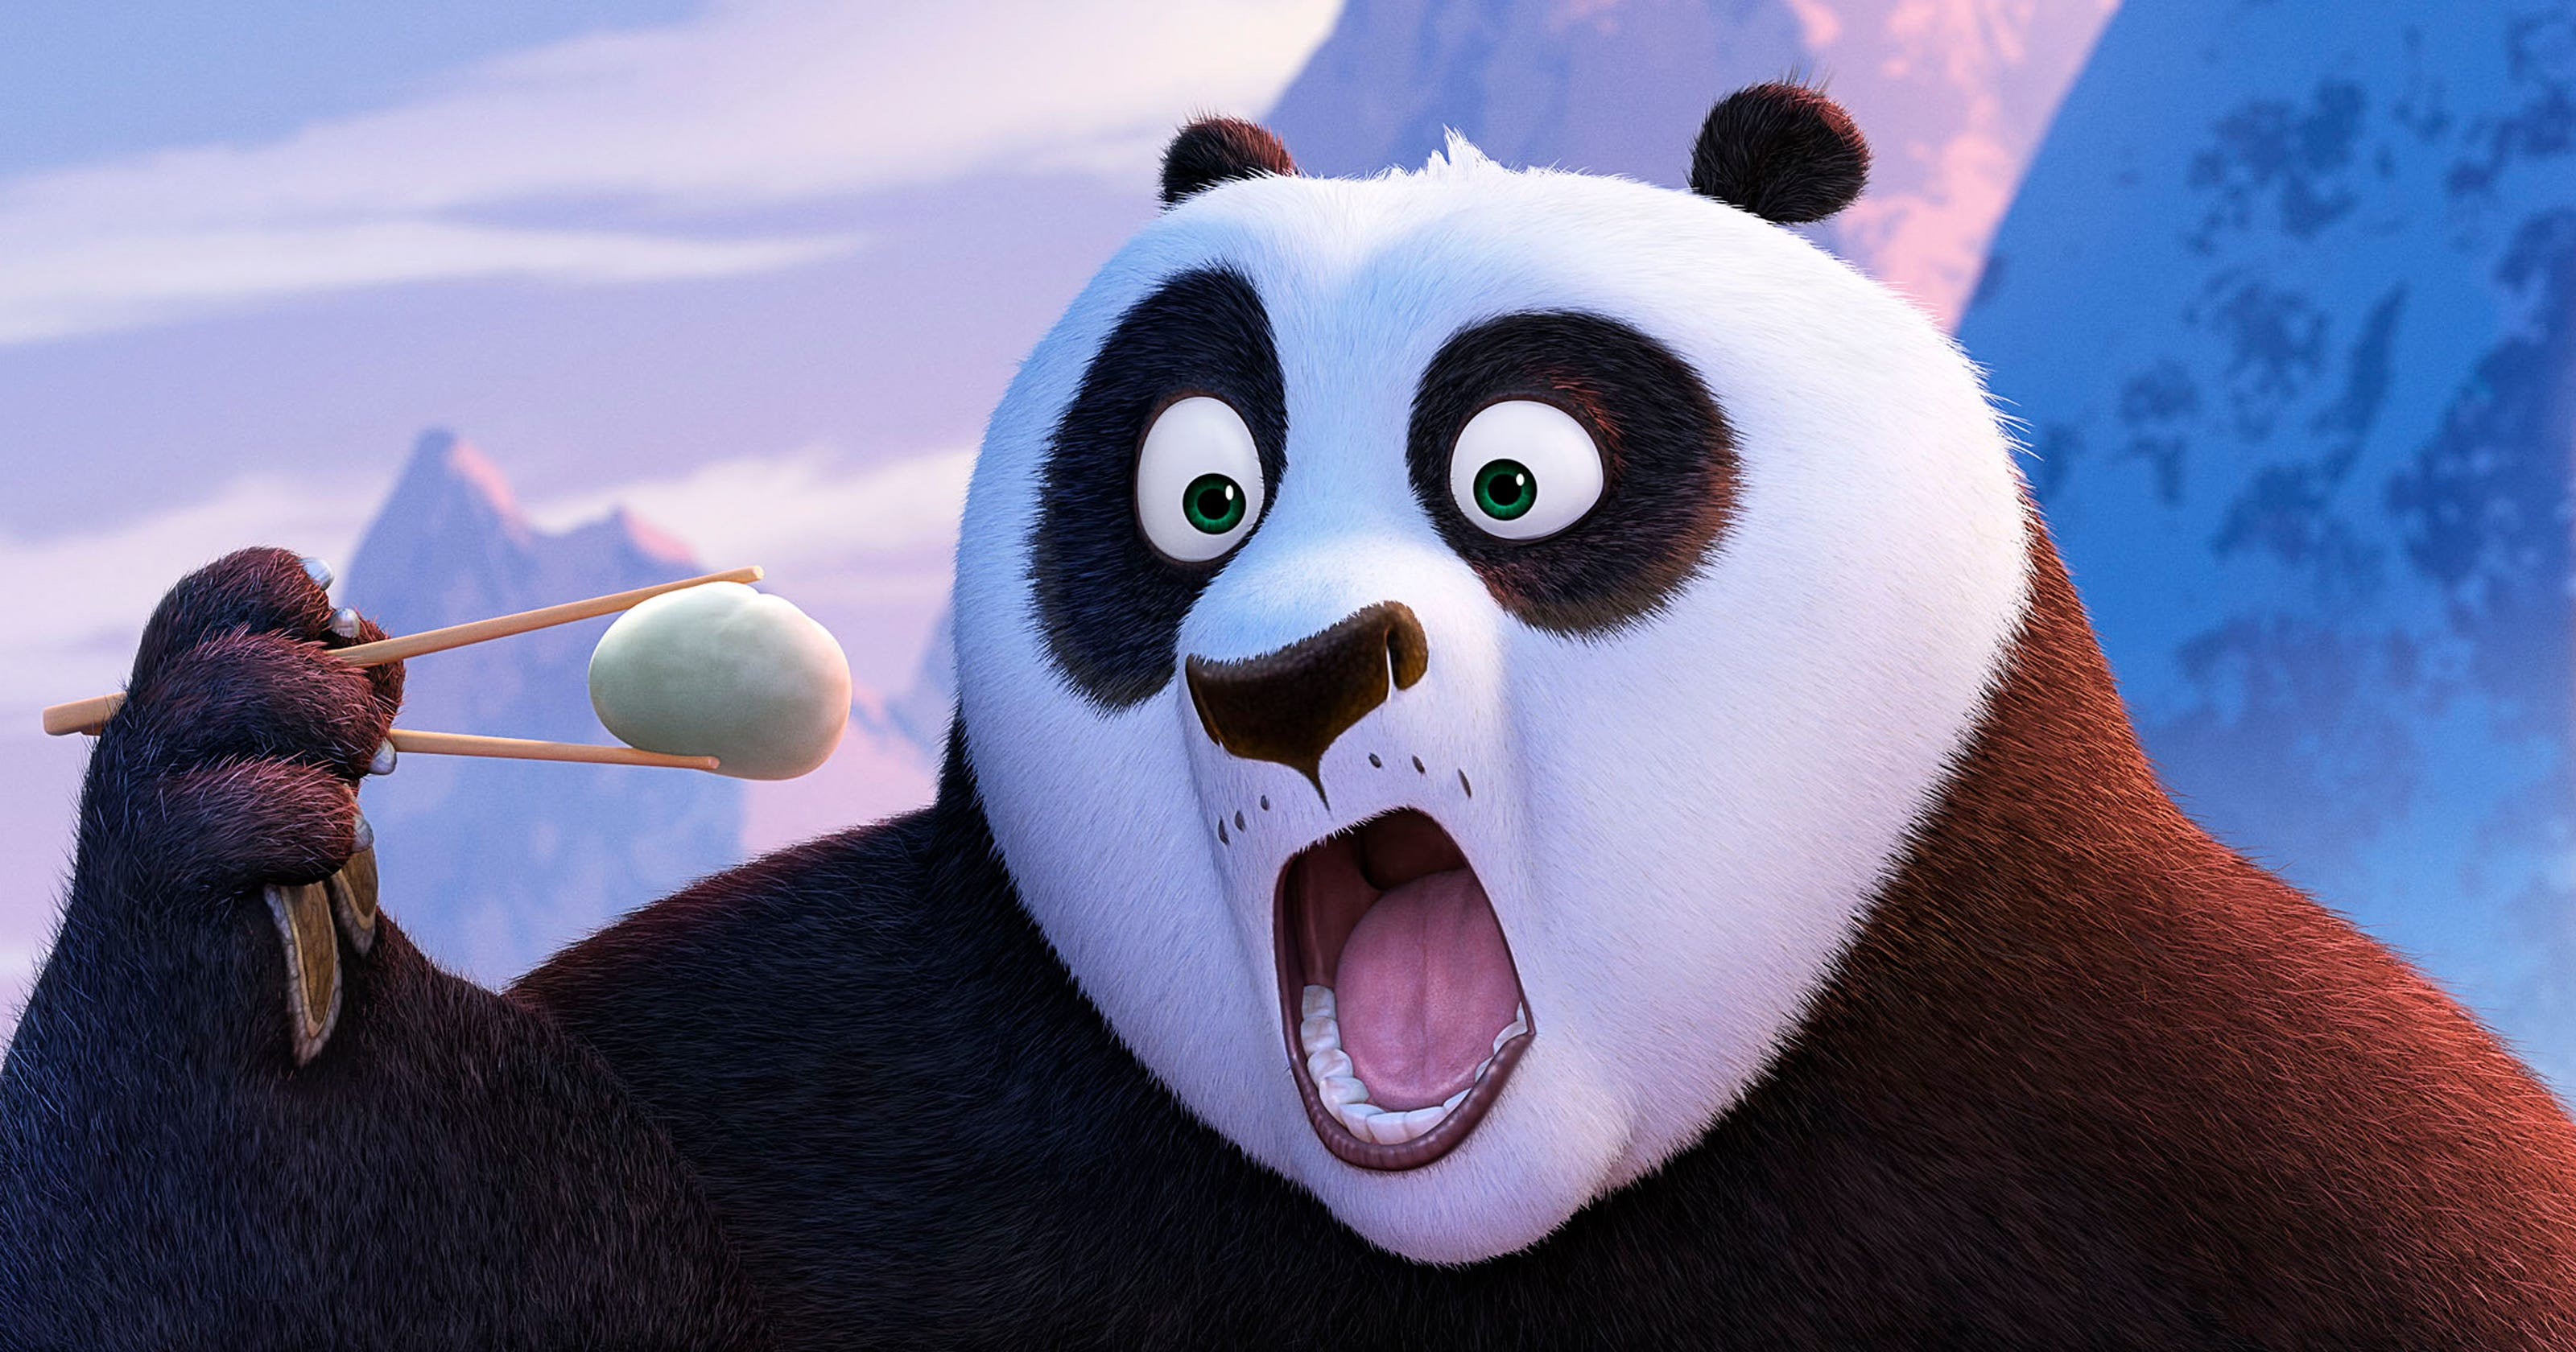 kung fu panda 3 karate kicks the competition with 41m